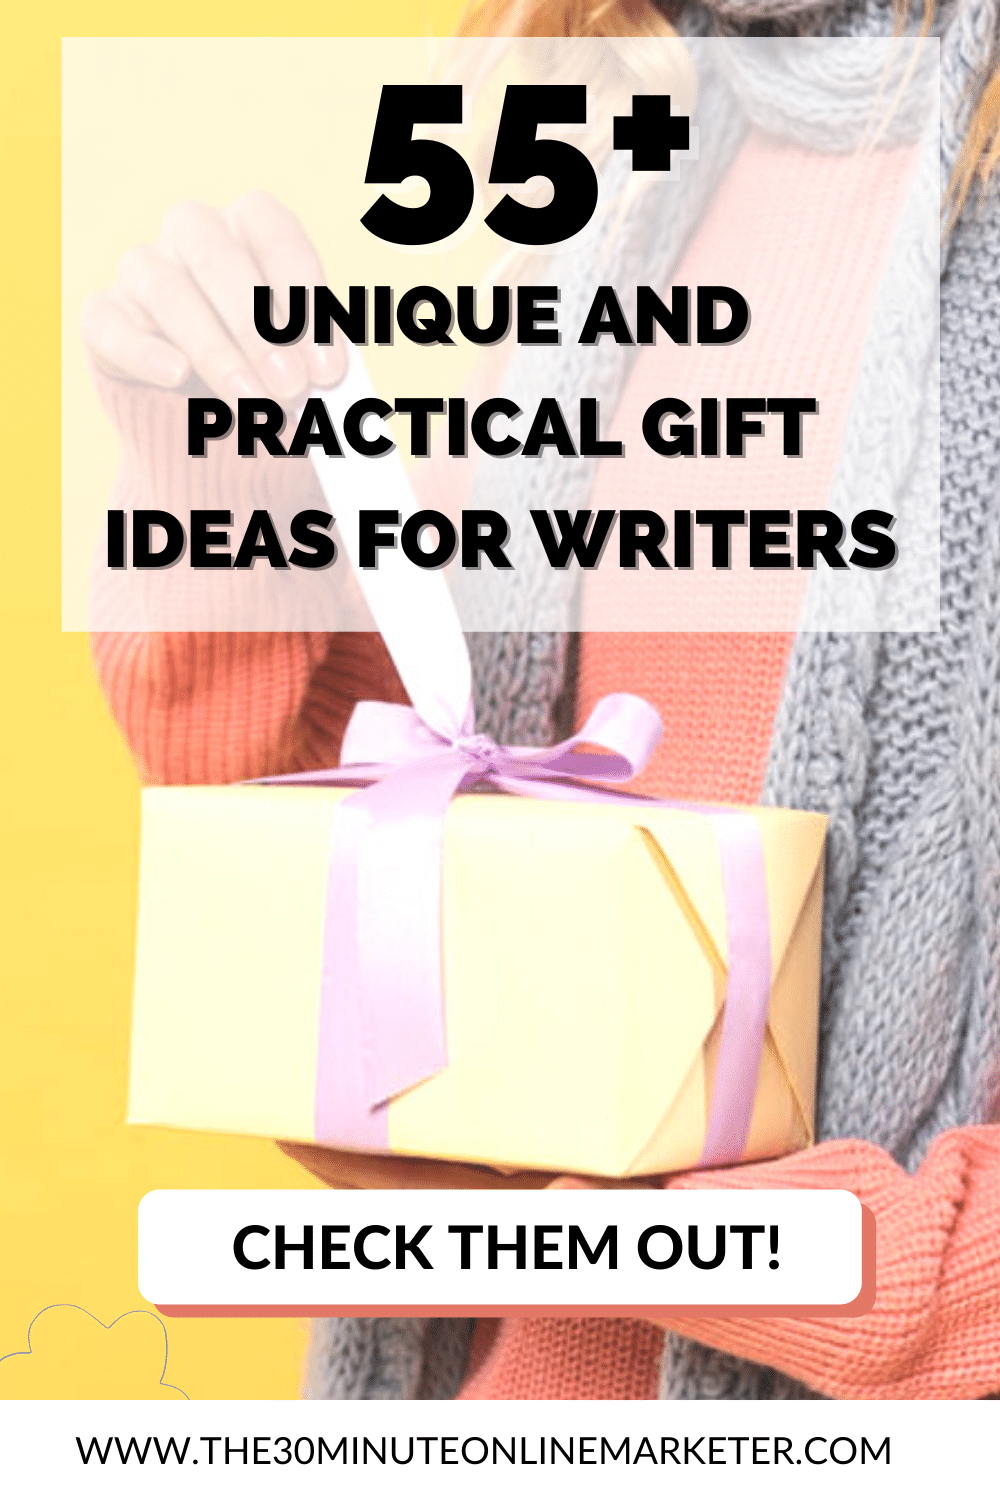 Best Gifts For Writers and Authors